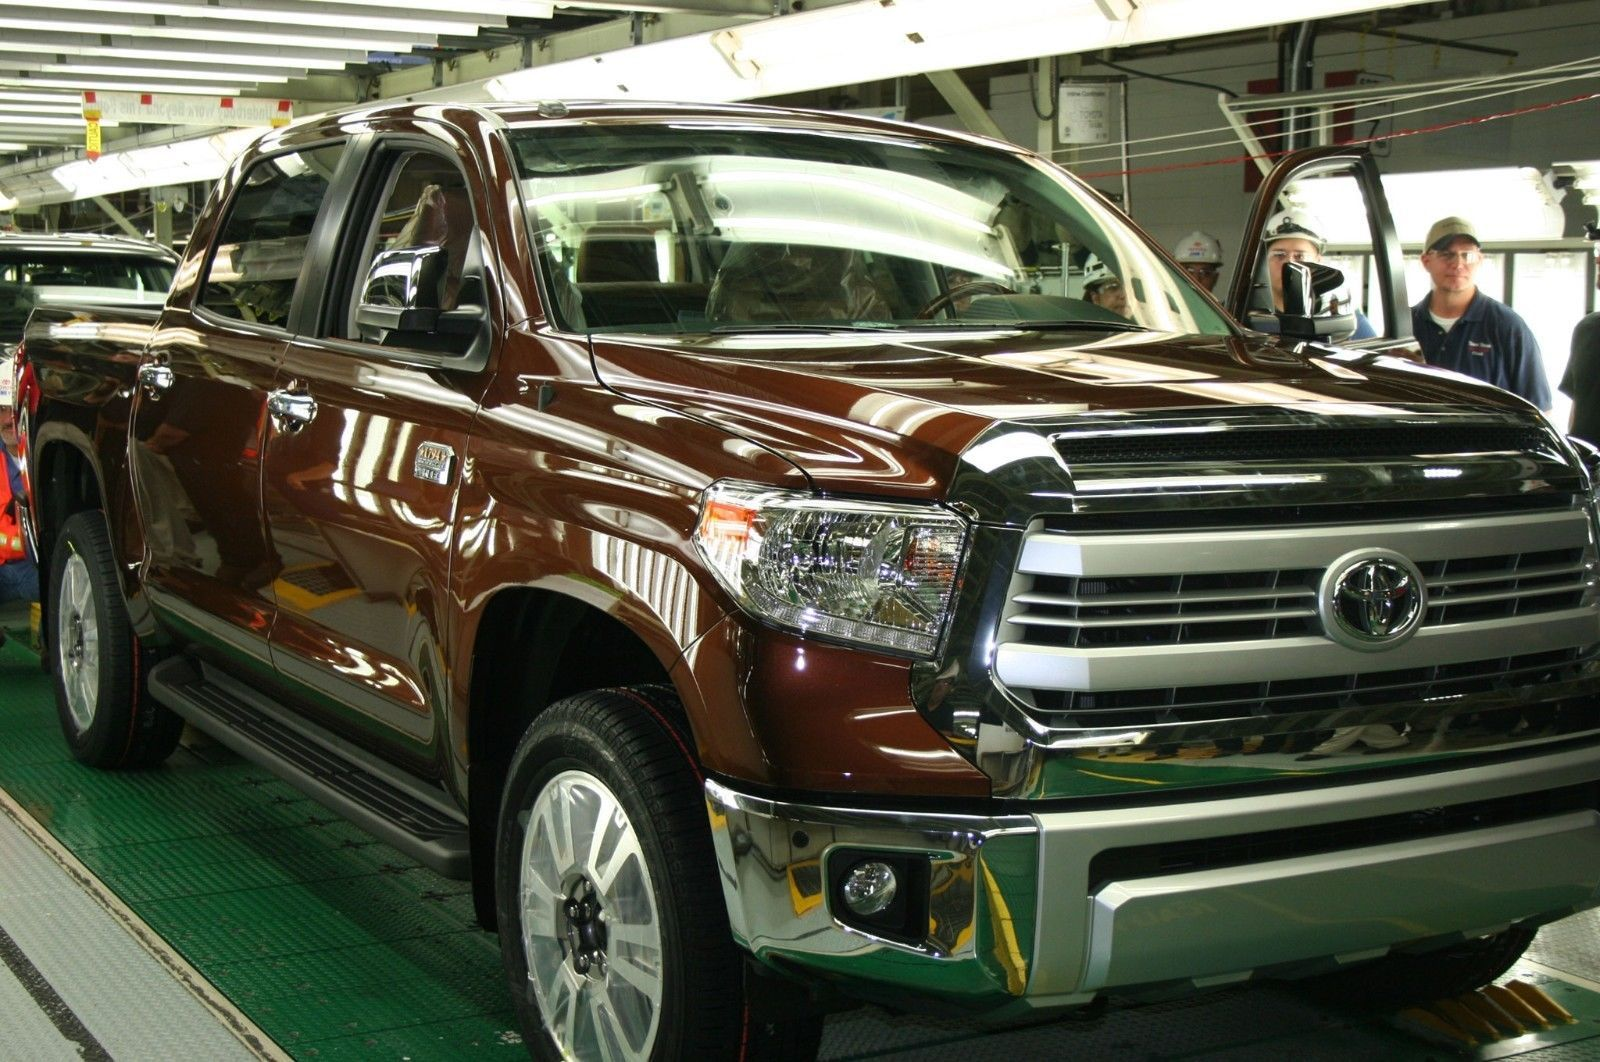 Primary image for 2014 TOYOTA TUNDRA 1794 POSTER | 24 x 36 INCH | TOY | PRODUCTION PLANT